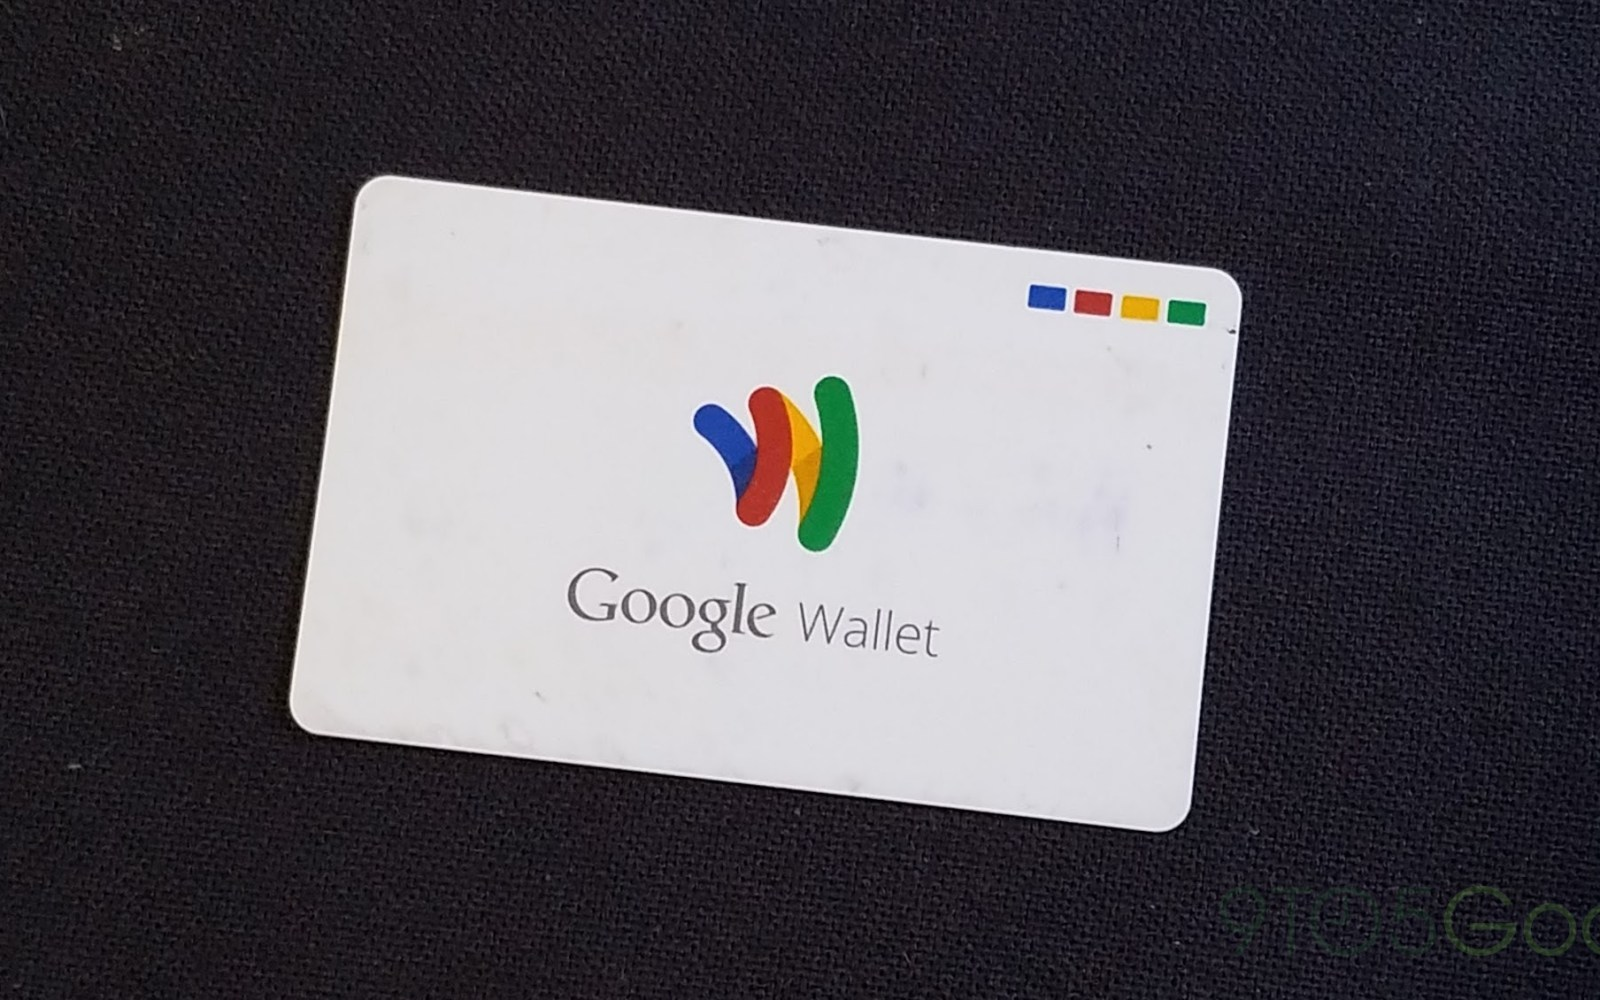 App teardown suggests that the Google Wallet card is going away June 30th